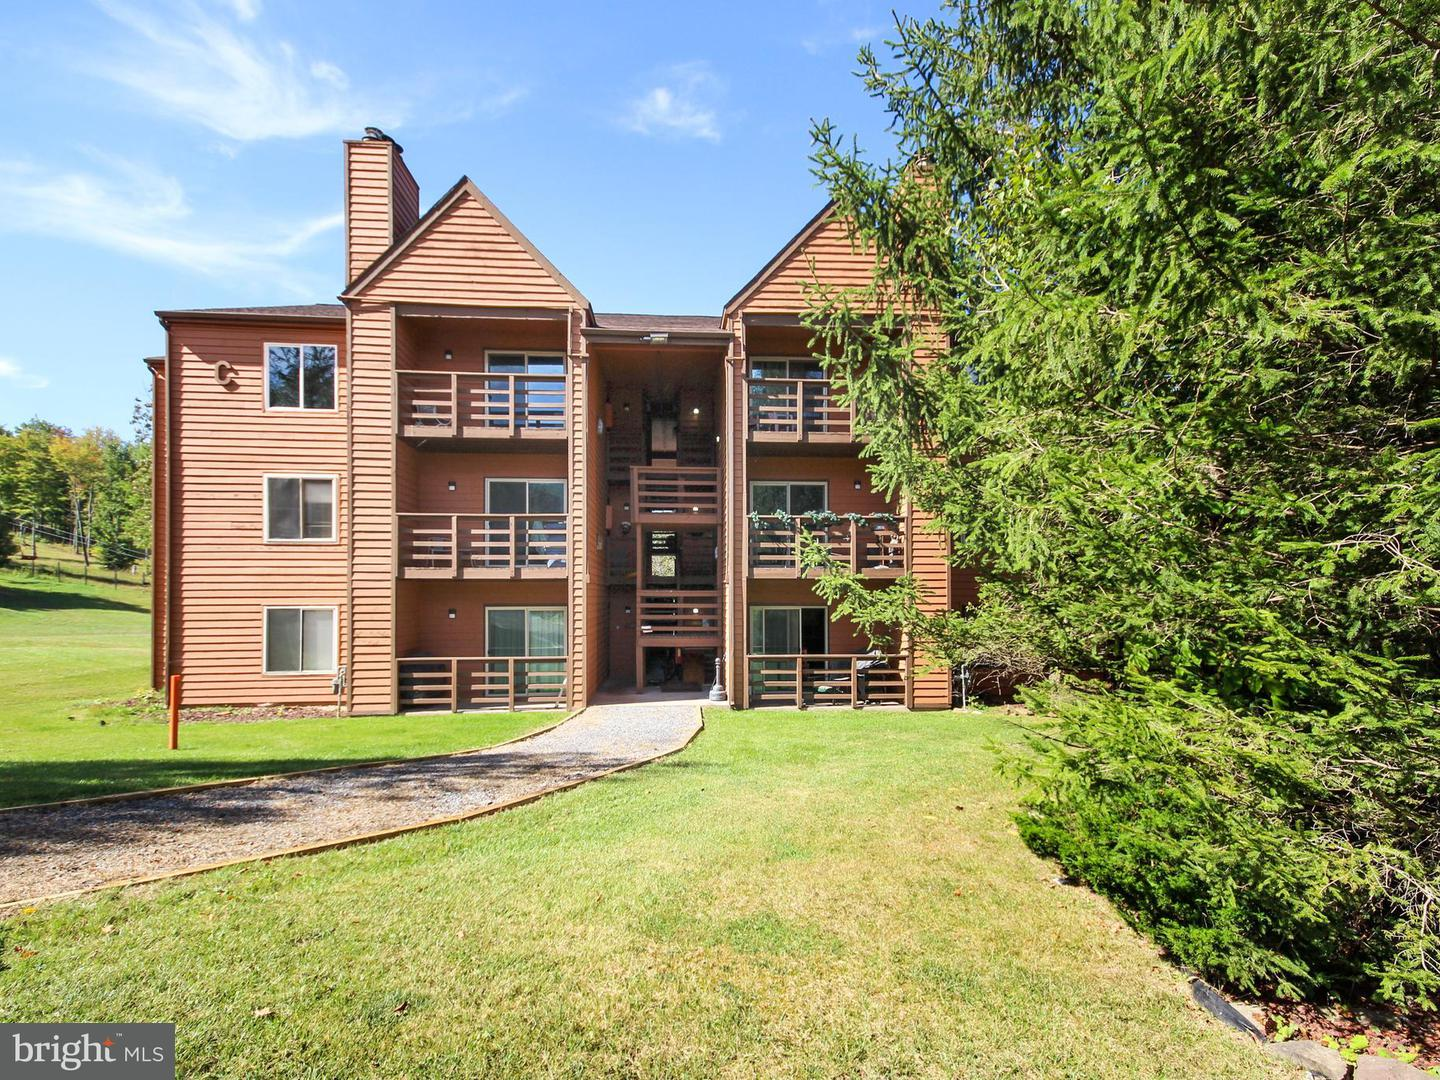 Single Family for Sale at 30 Herzwood Dr #d101 Davis, West Virginia 26260 United States